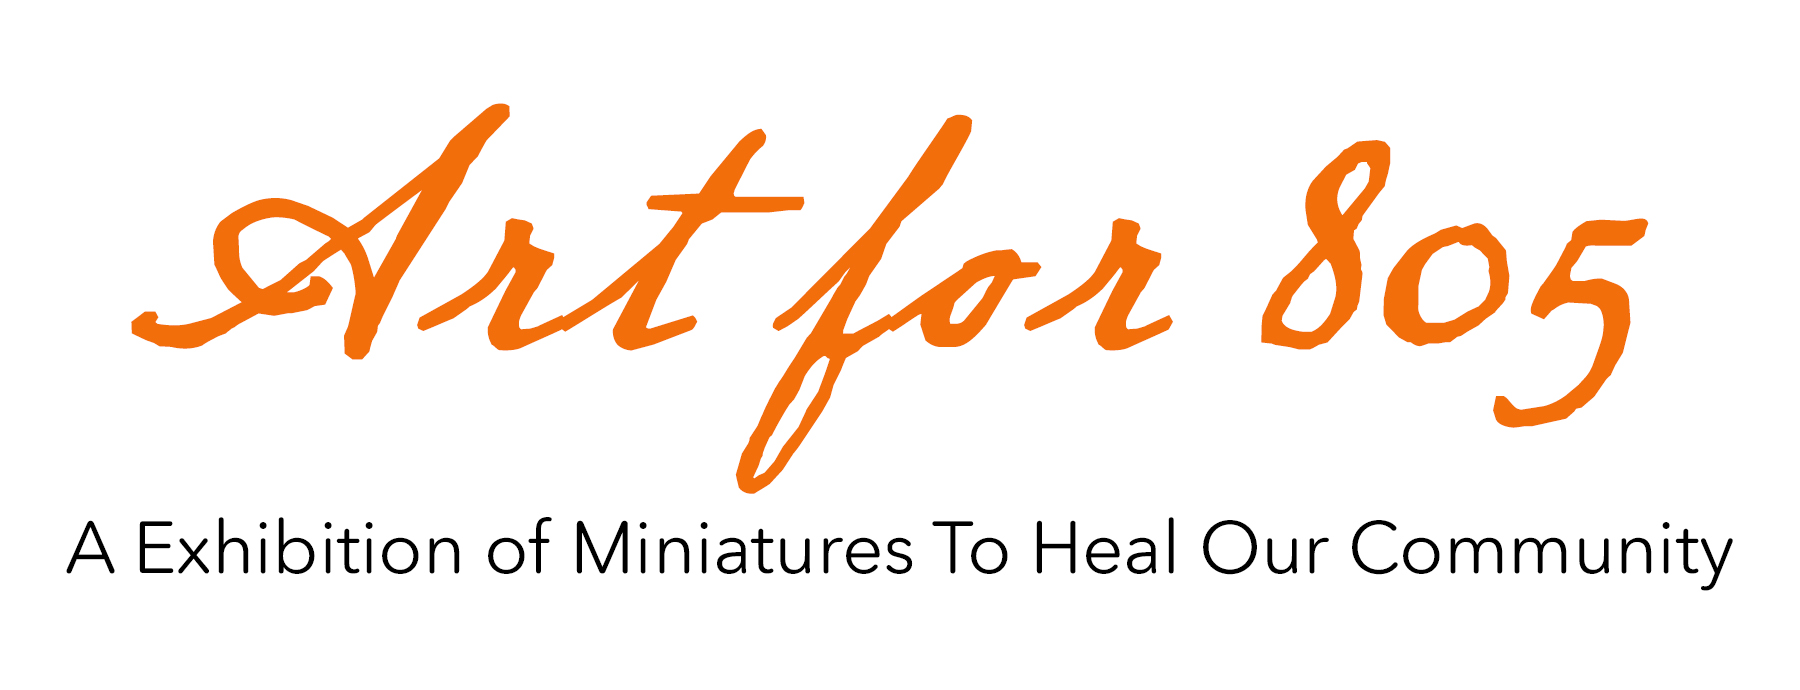 Art for 805: A Exhibition of Miniatures To Heal Our Community